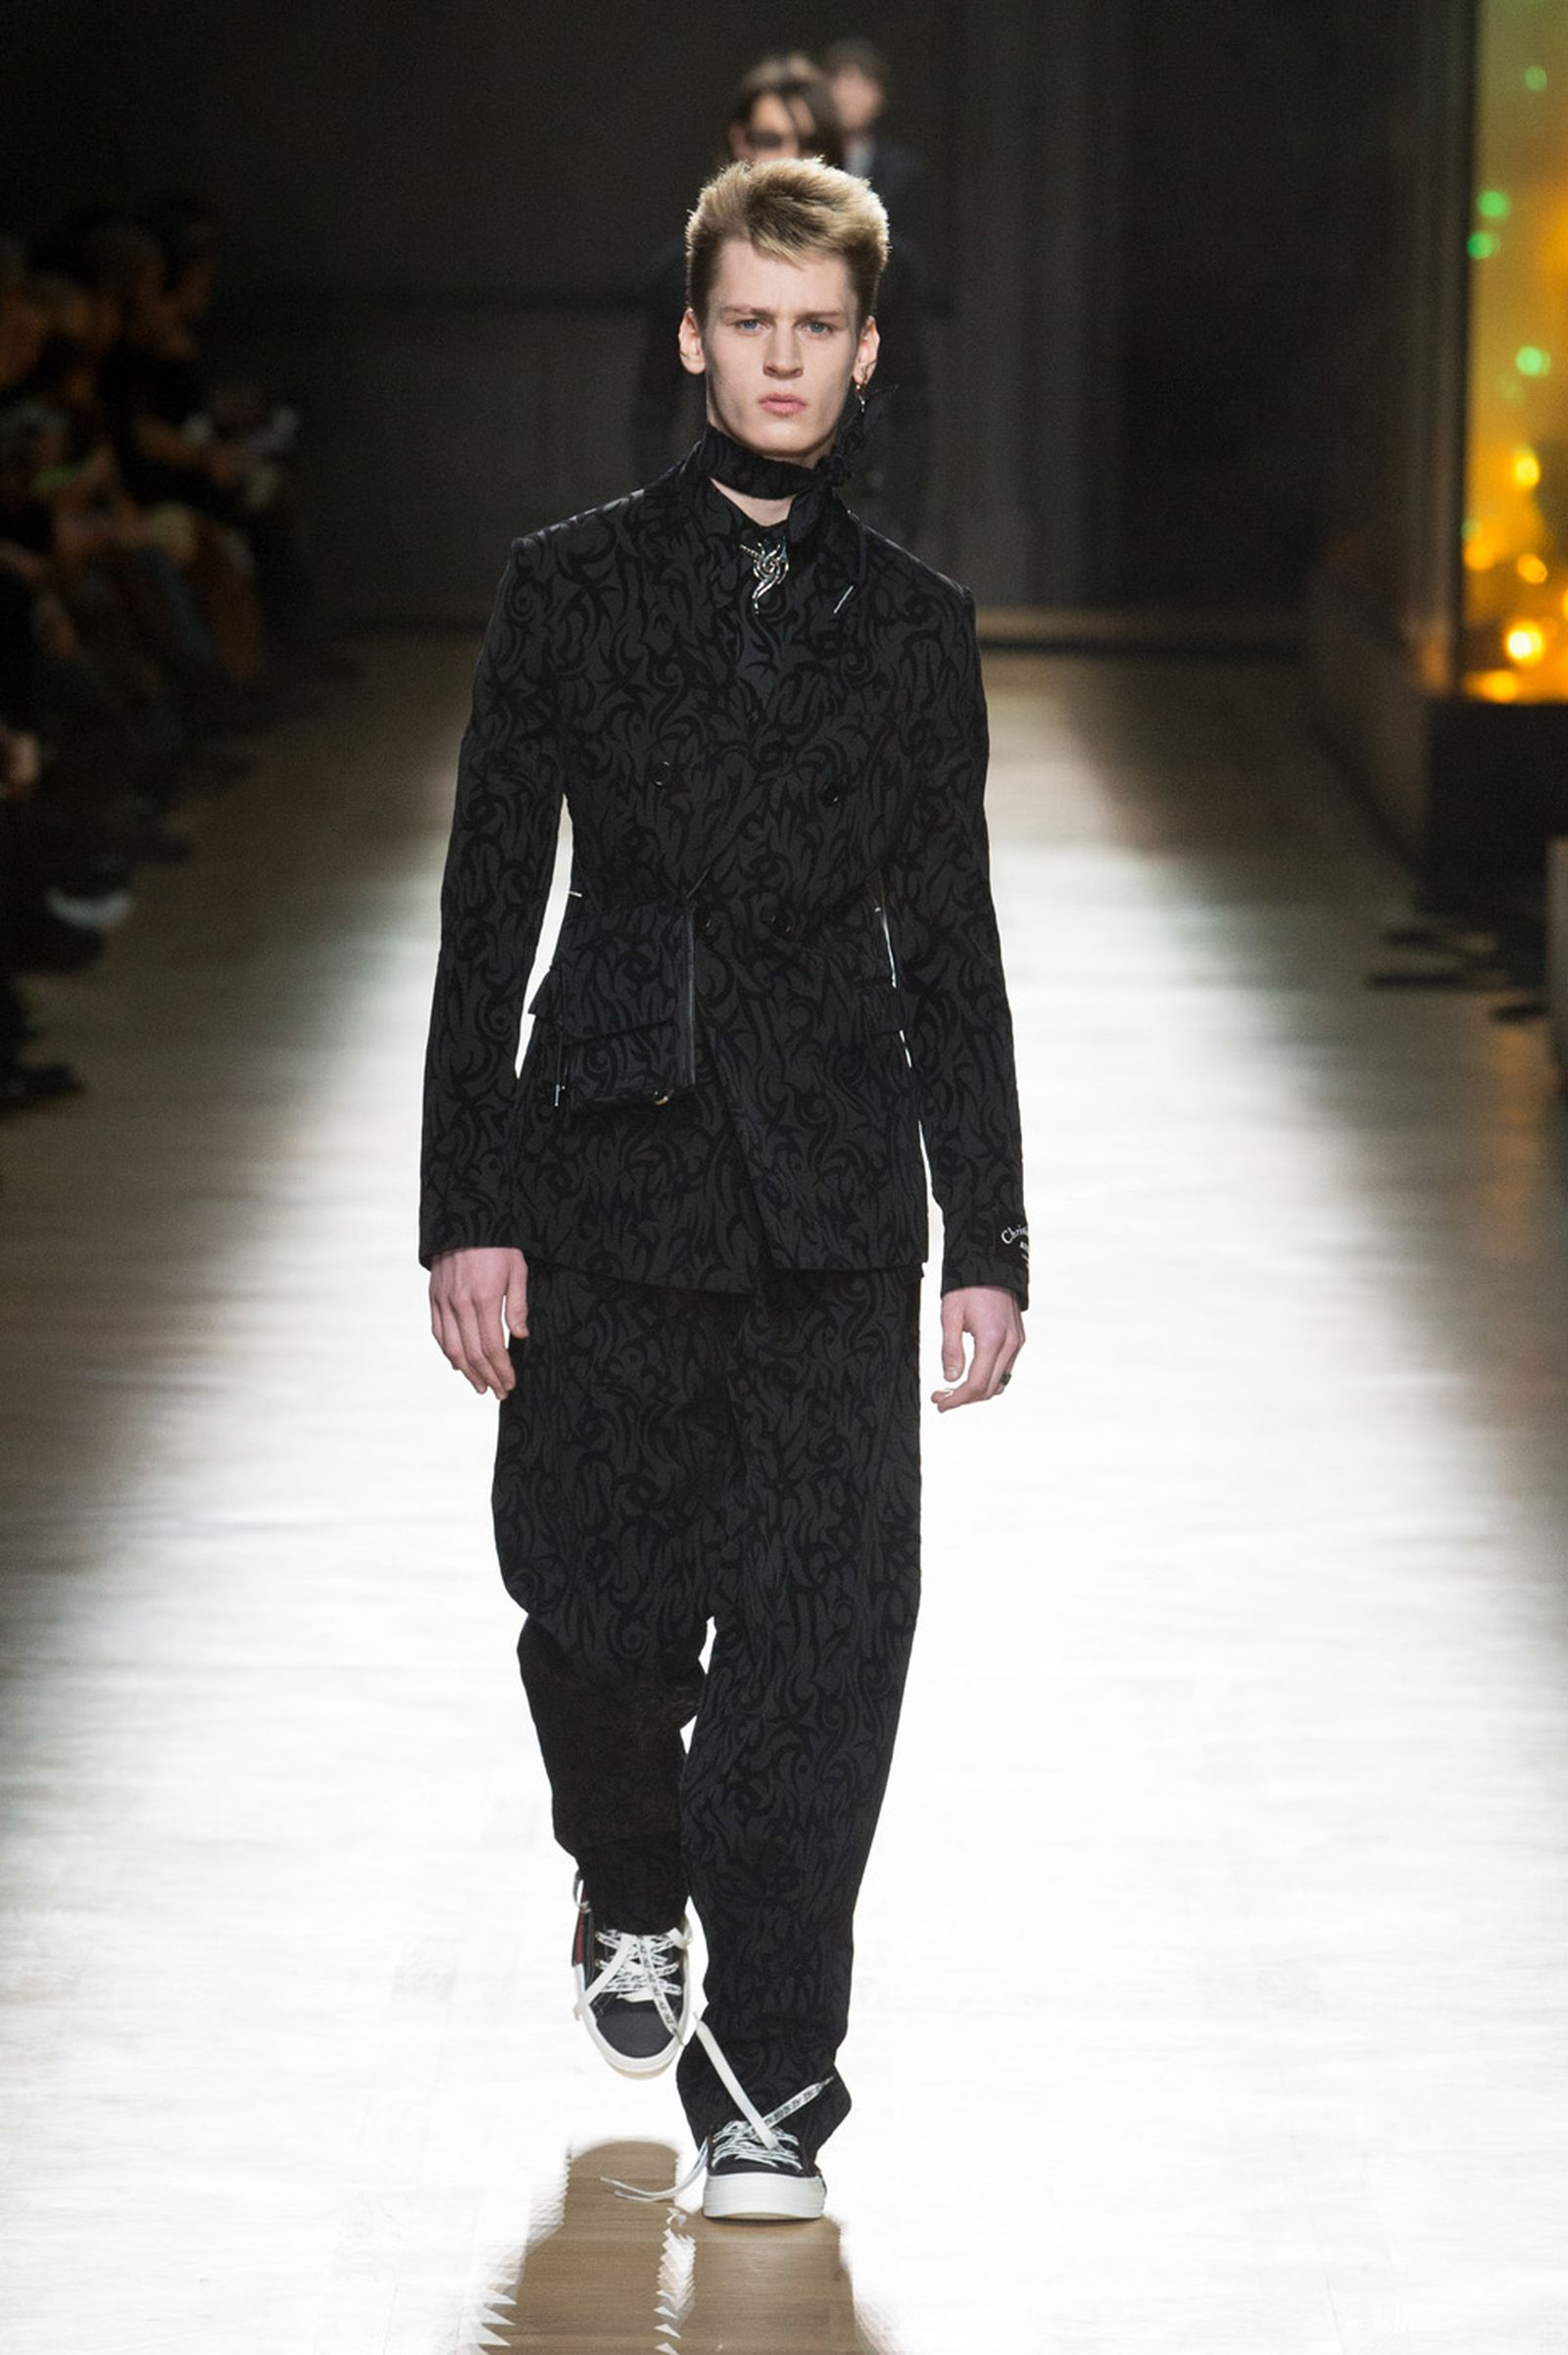 DIOR HOMME WINTER 18 19 BY PATRICE STABLE look45 Fall/WInter 2018 runway